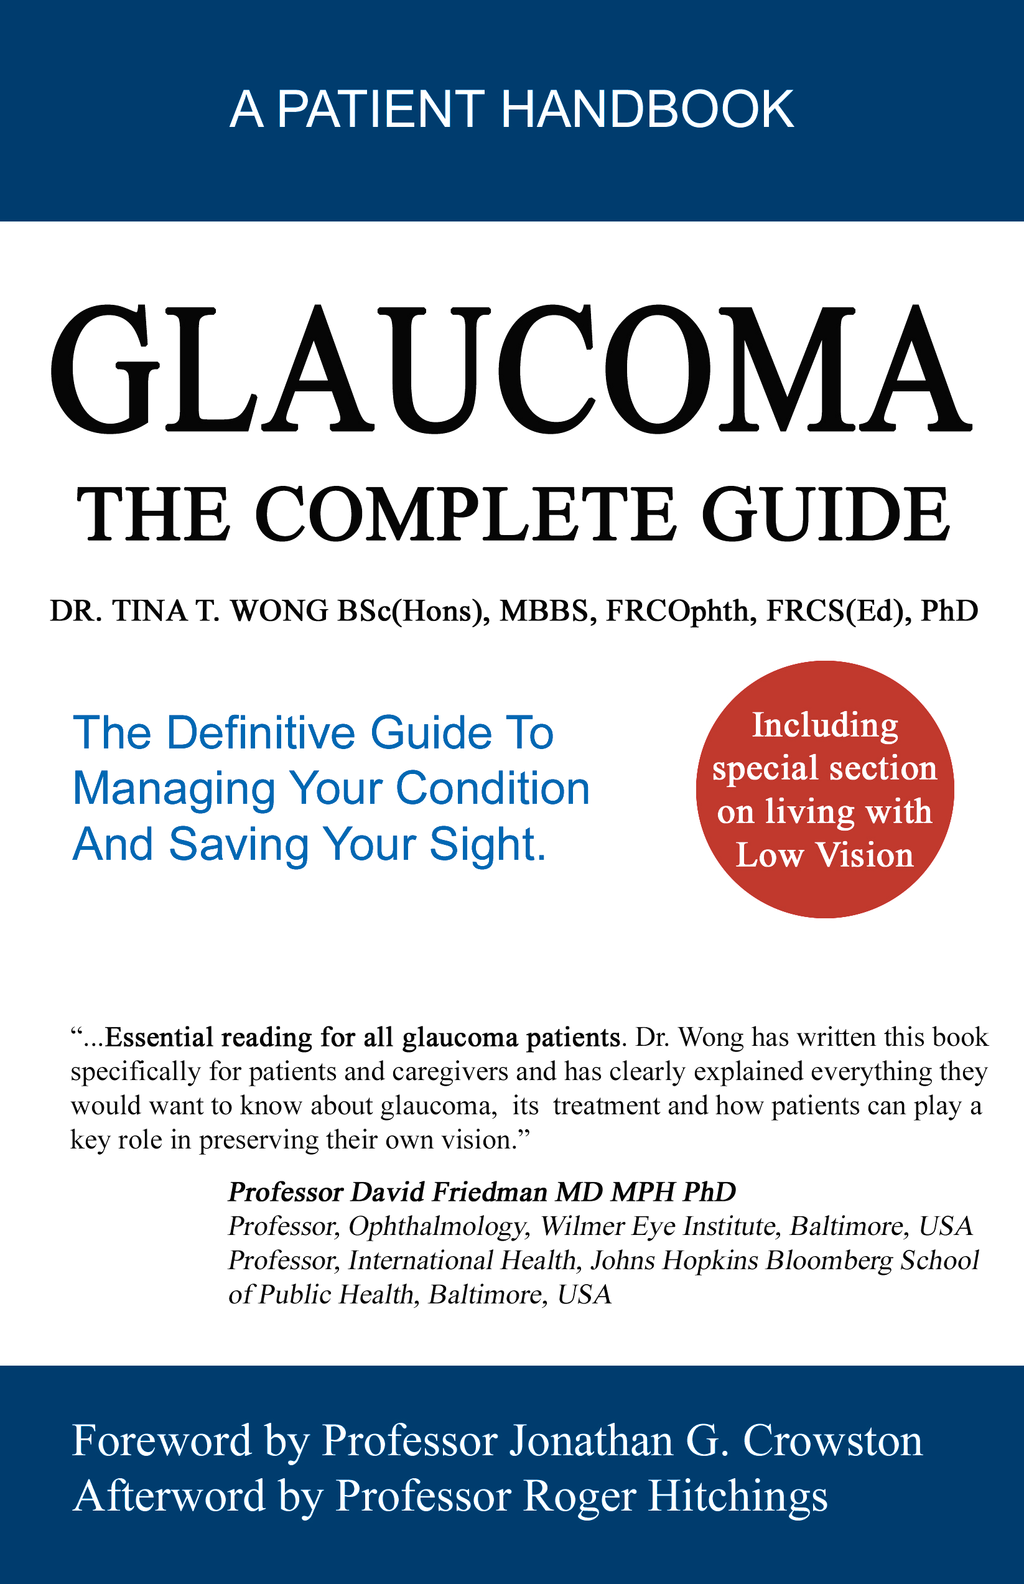 Glaucoma The Complete Guide: The Definitive Guide To Managing Your Condition And Saving Your Sight